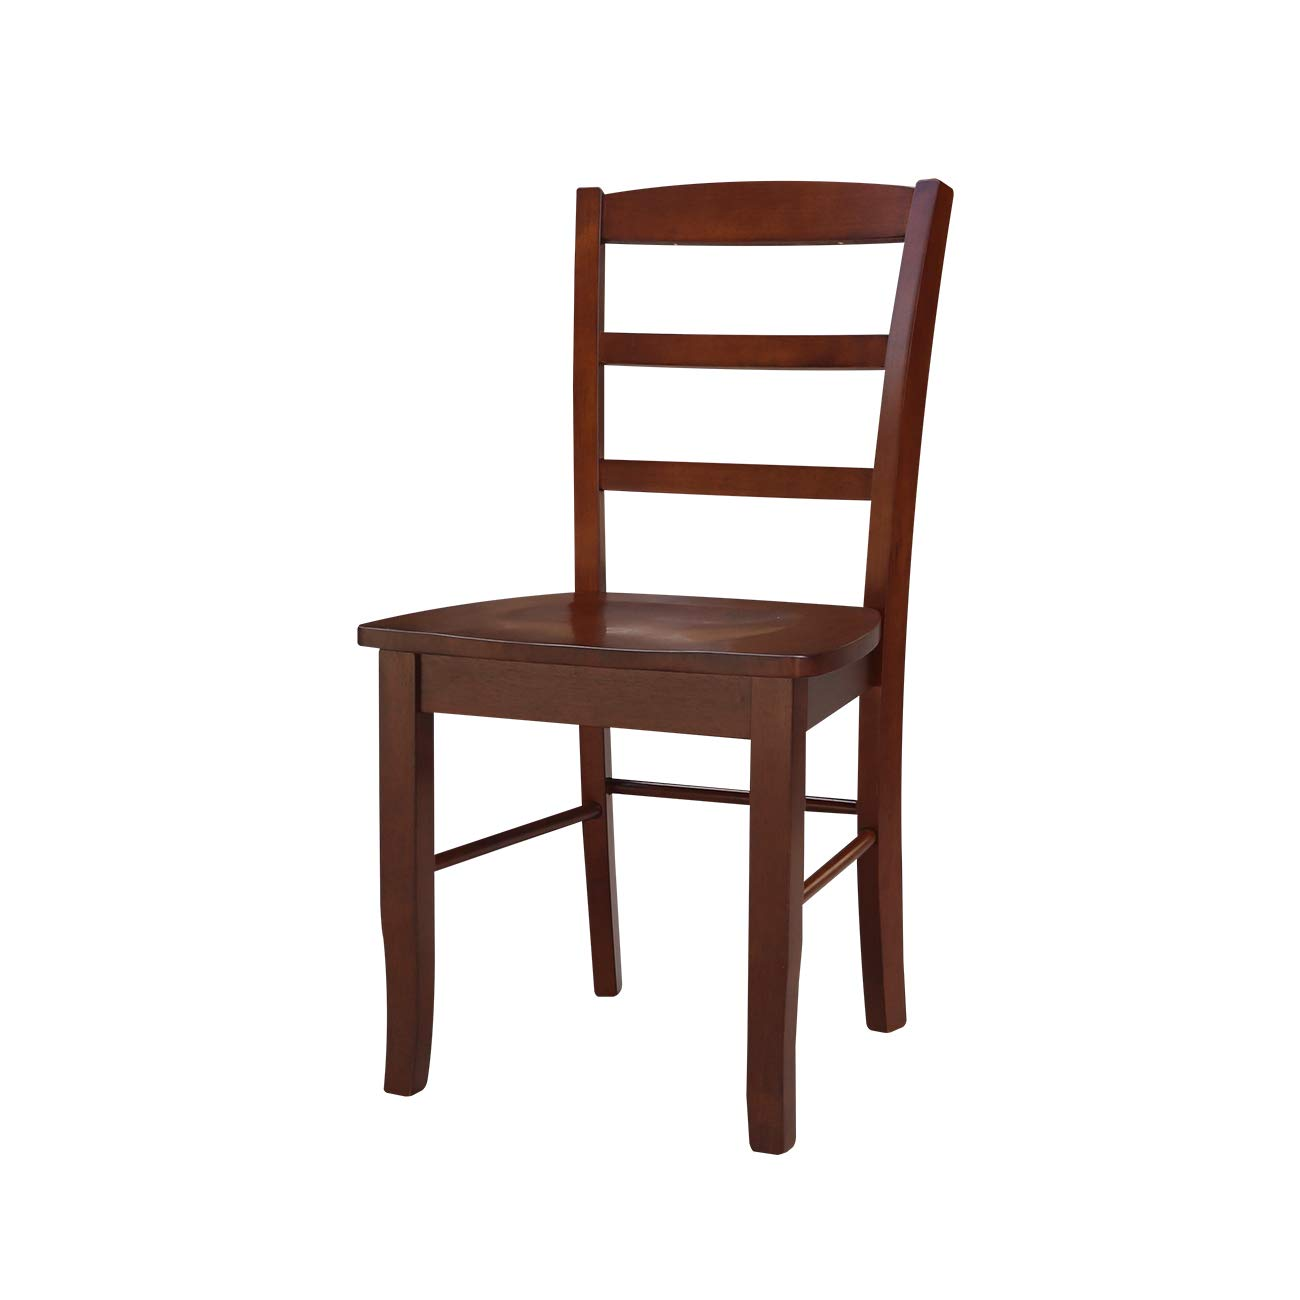 International Concepts Madrid Ladder Back Chair, Espresso